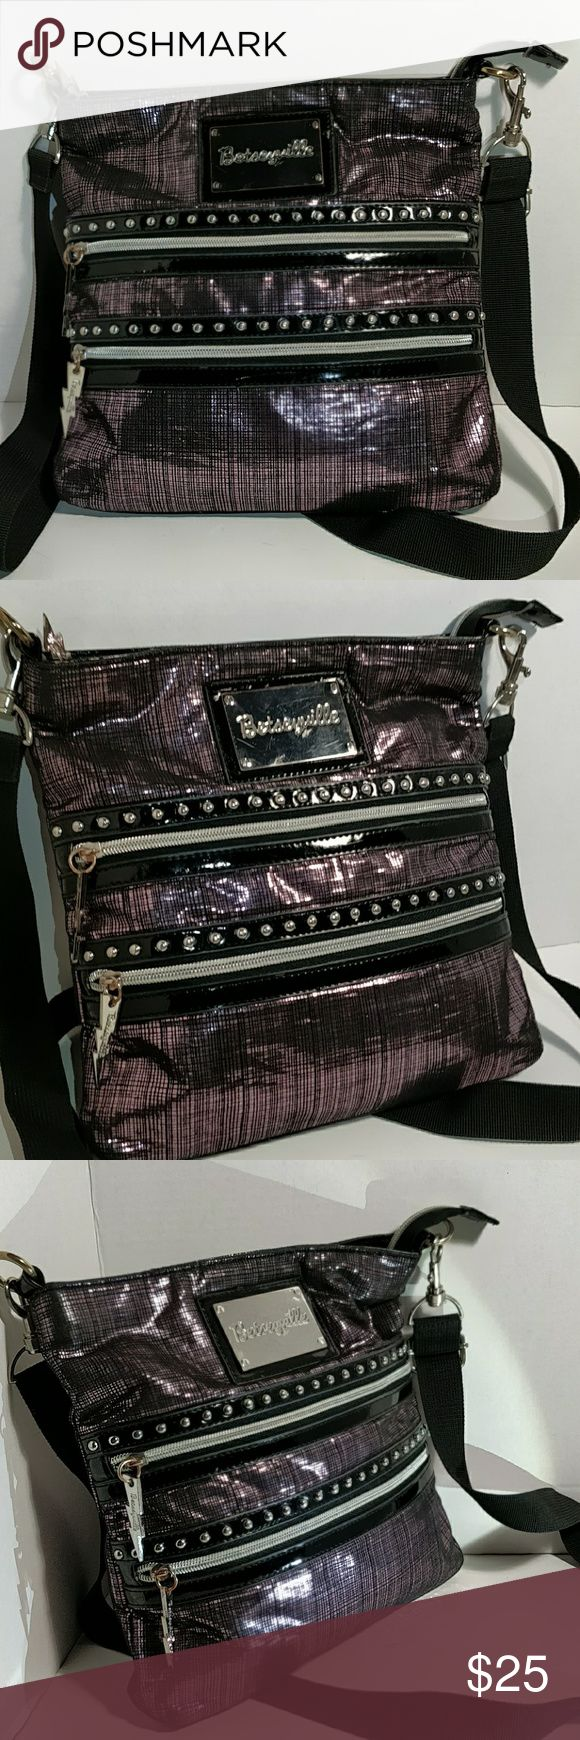 Betseyville crossbody travel bag slightly used...has a small scratch on main emblem see last picture. Betseyville Bags Crossbody Bags